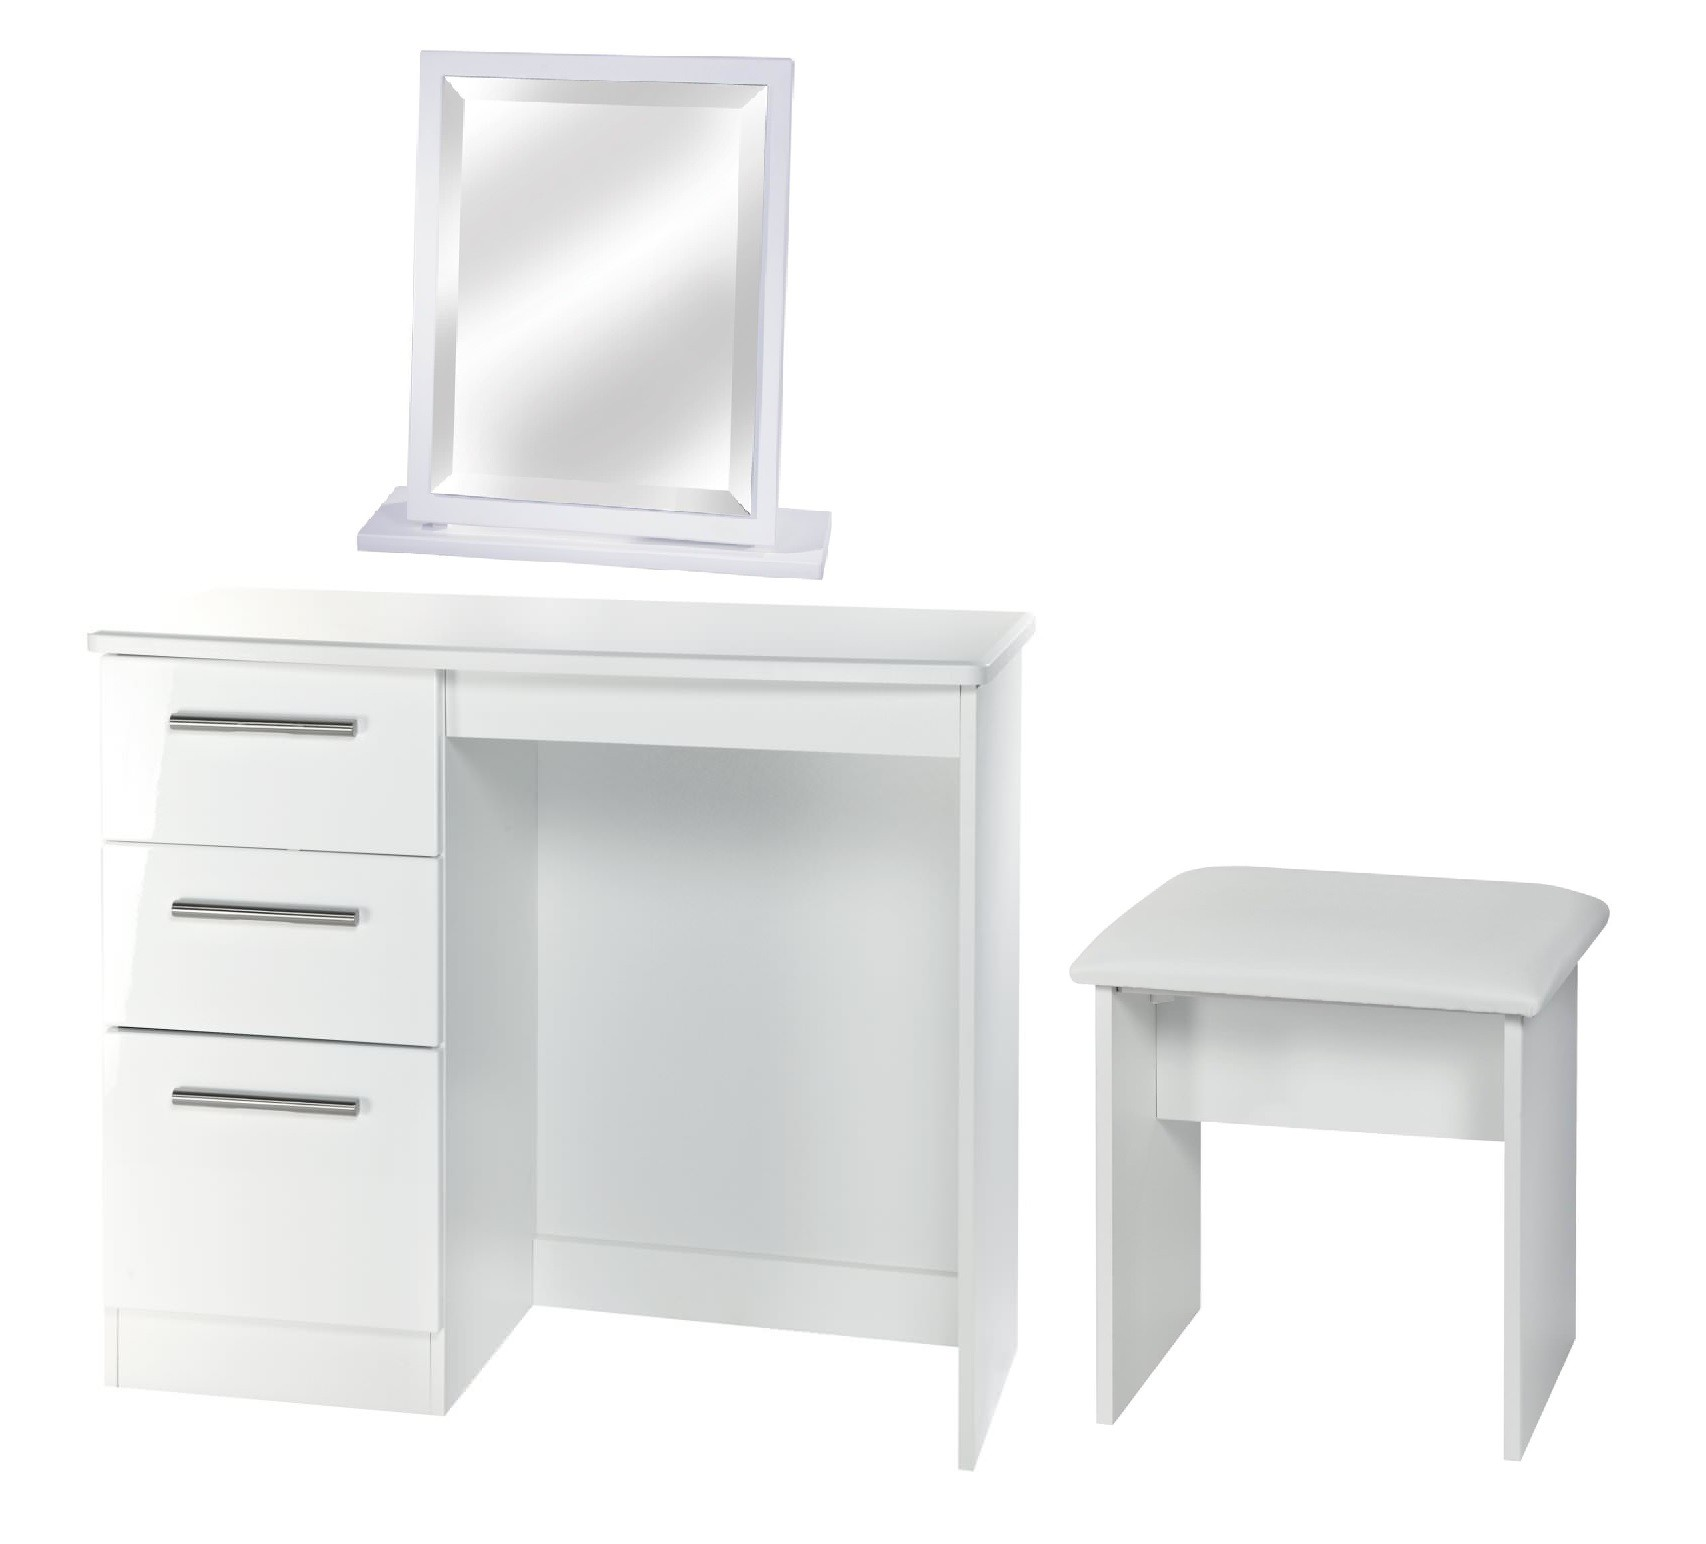 Knightsbridge White Table stool and mirror